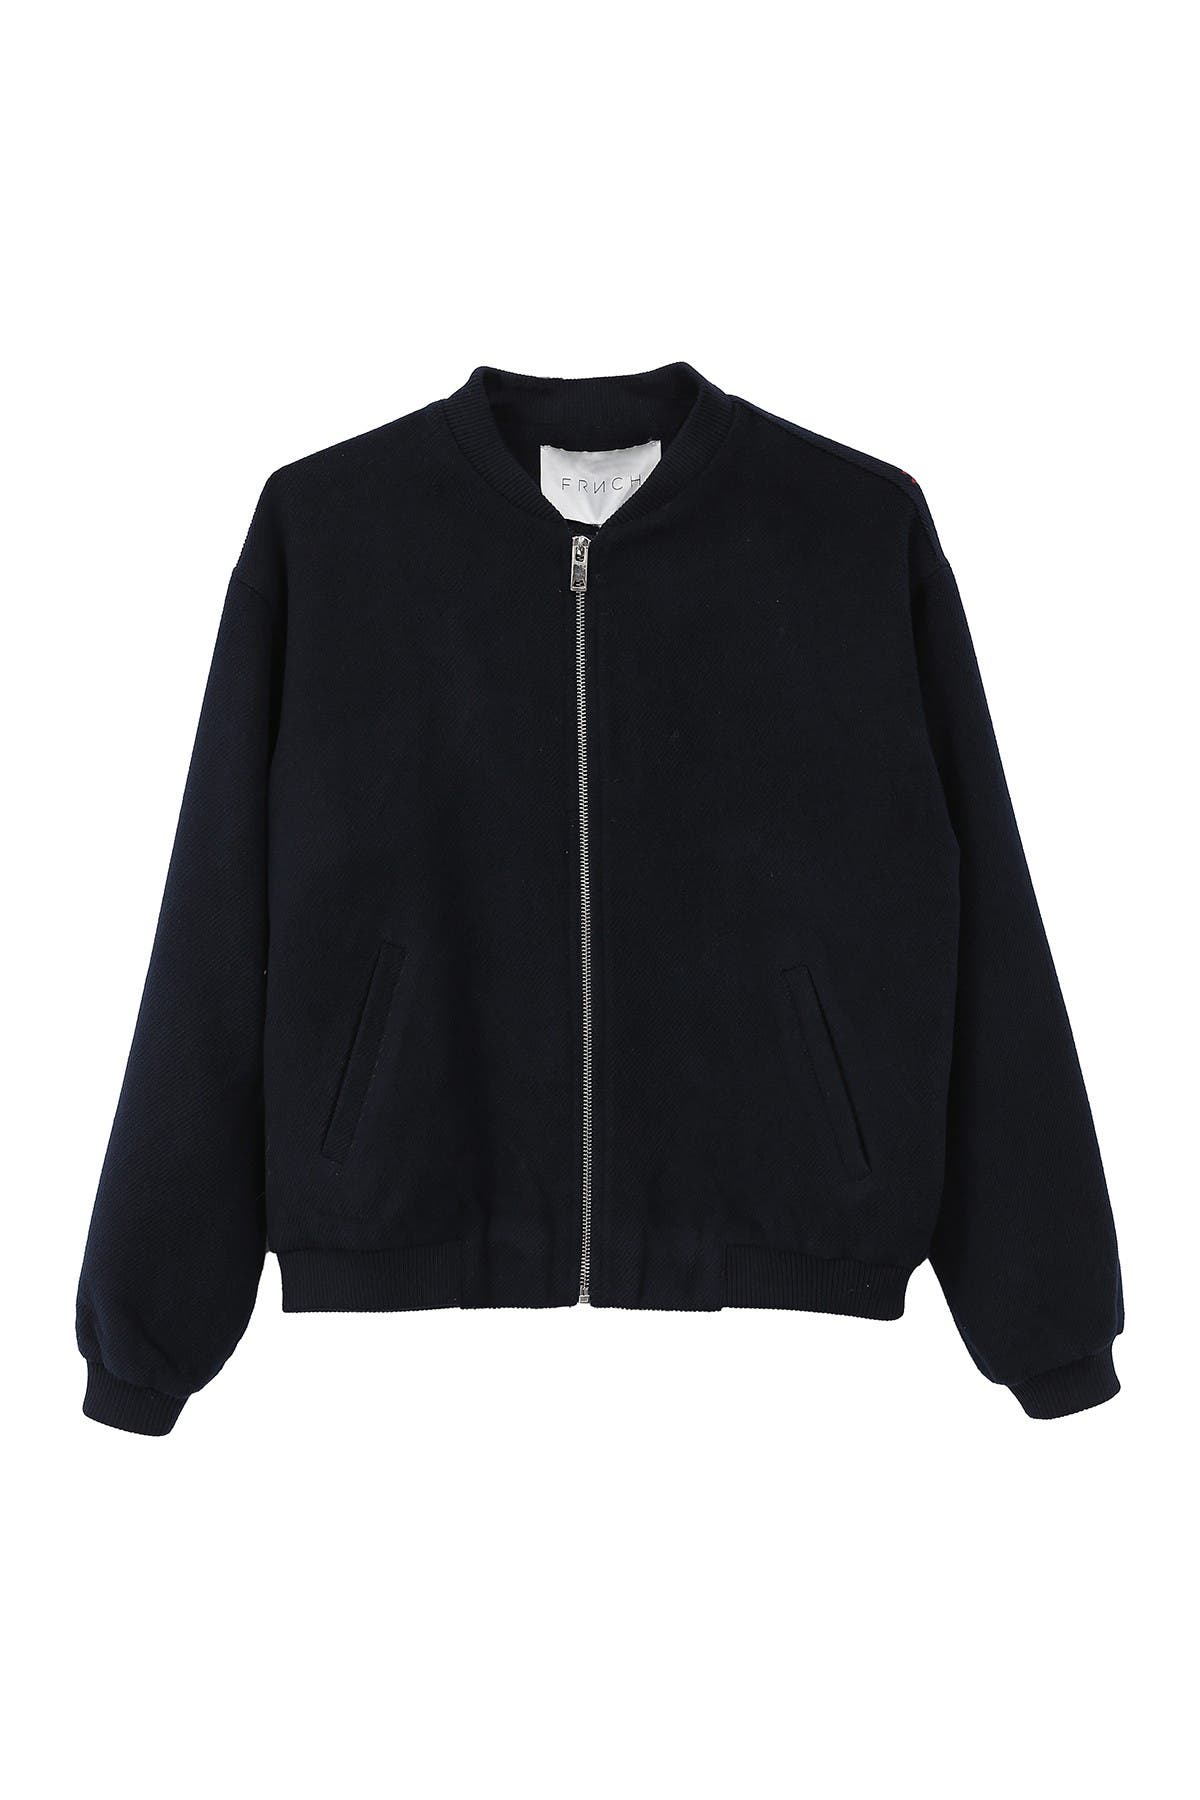 Image of FRNCH Long Sleeve Classic Club Jacket